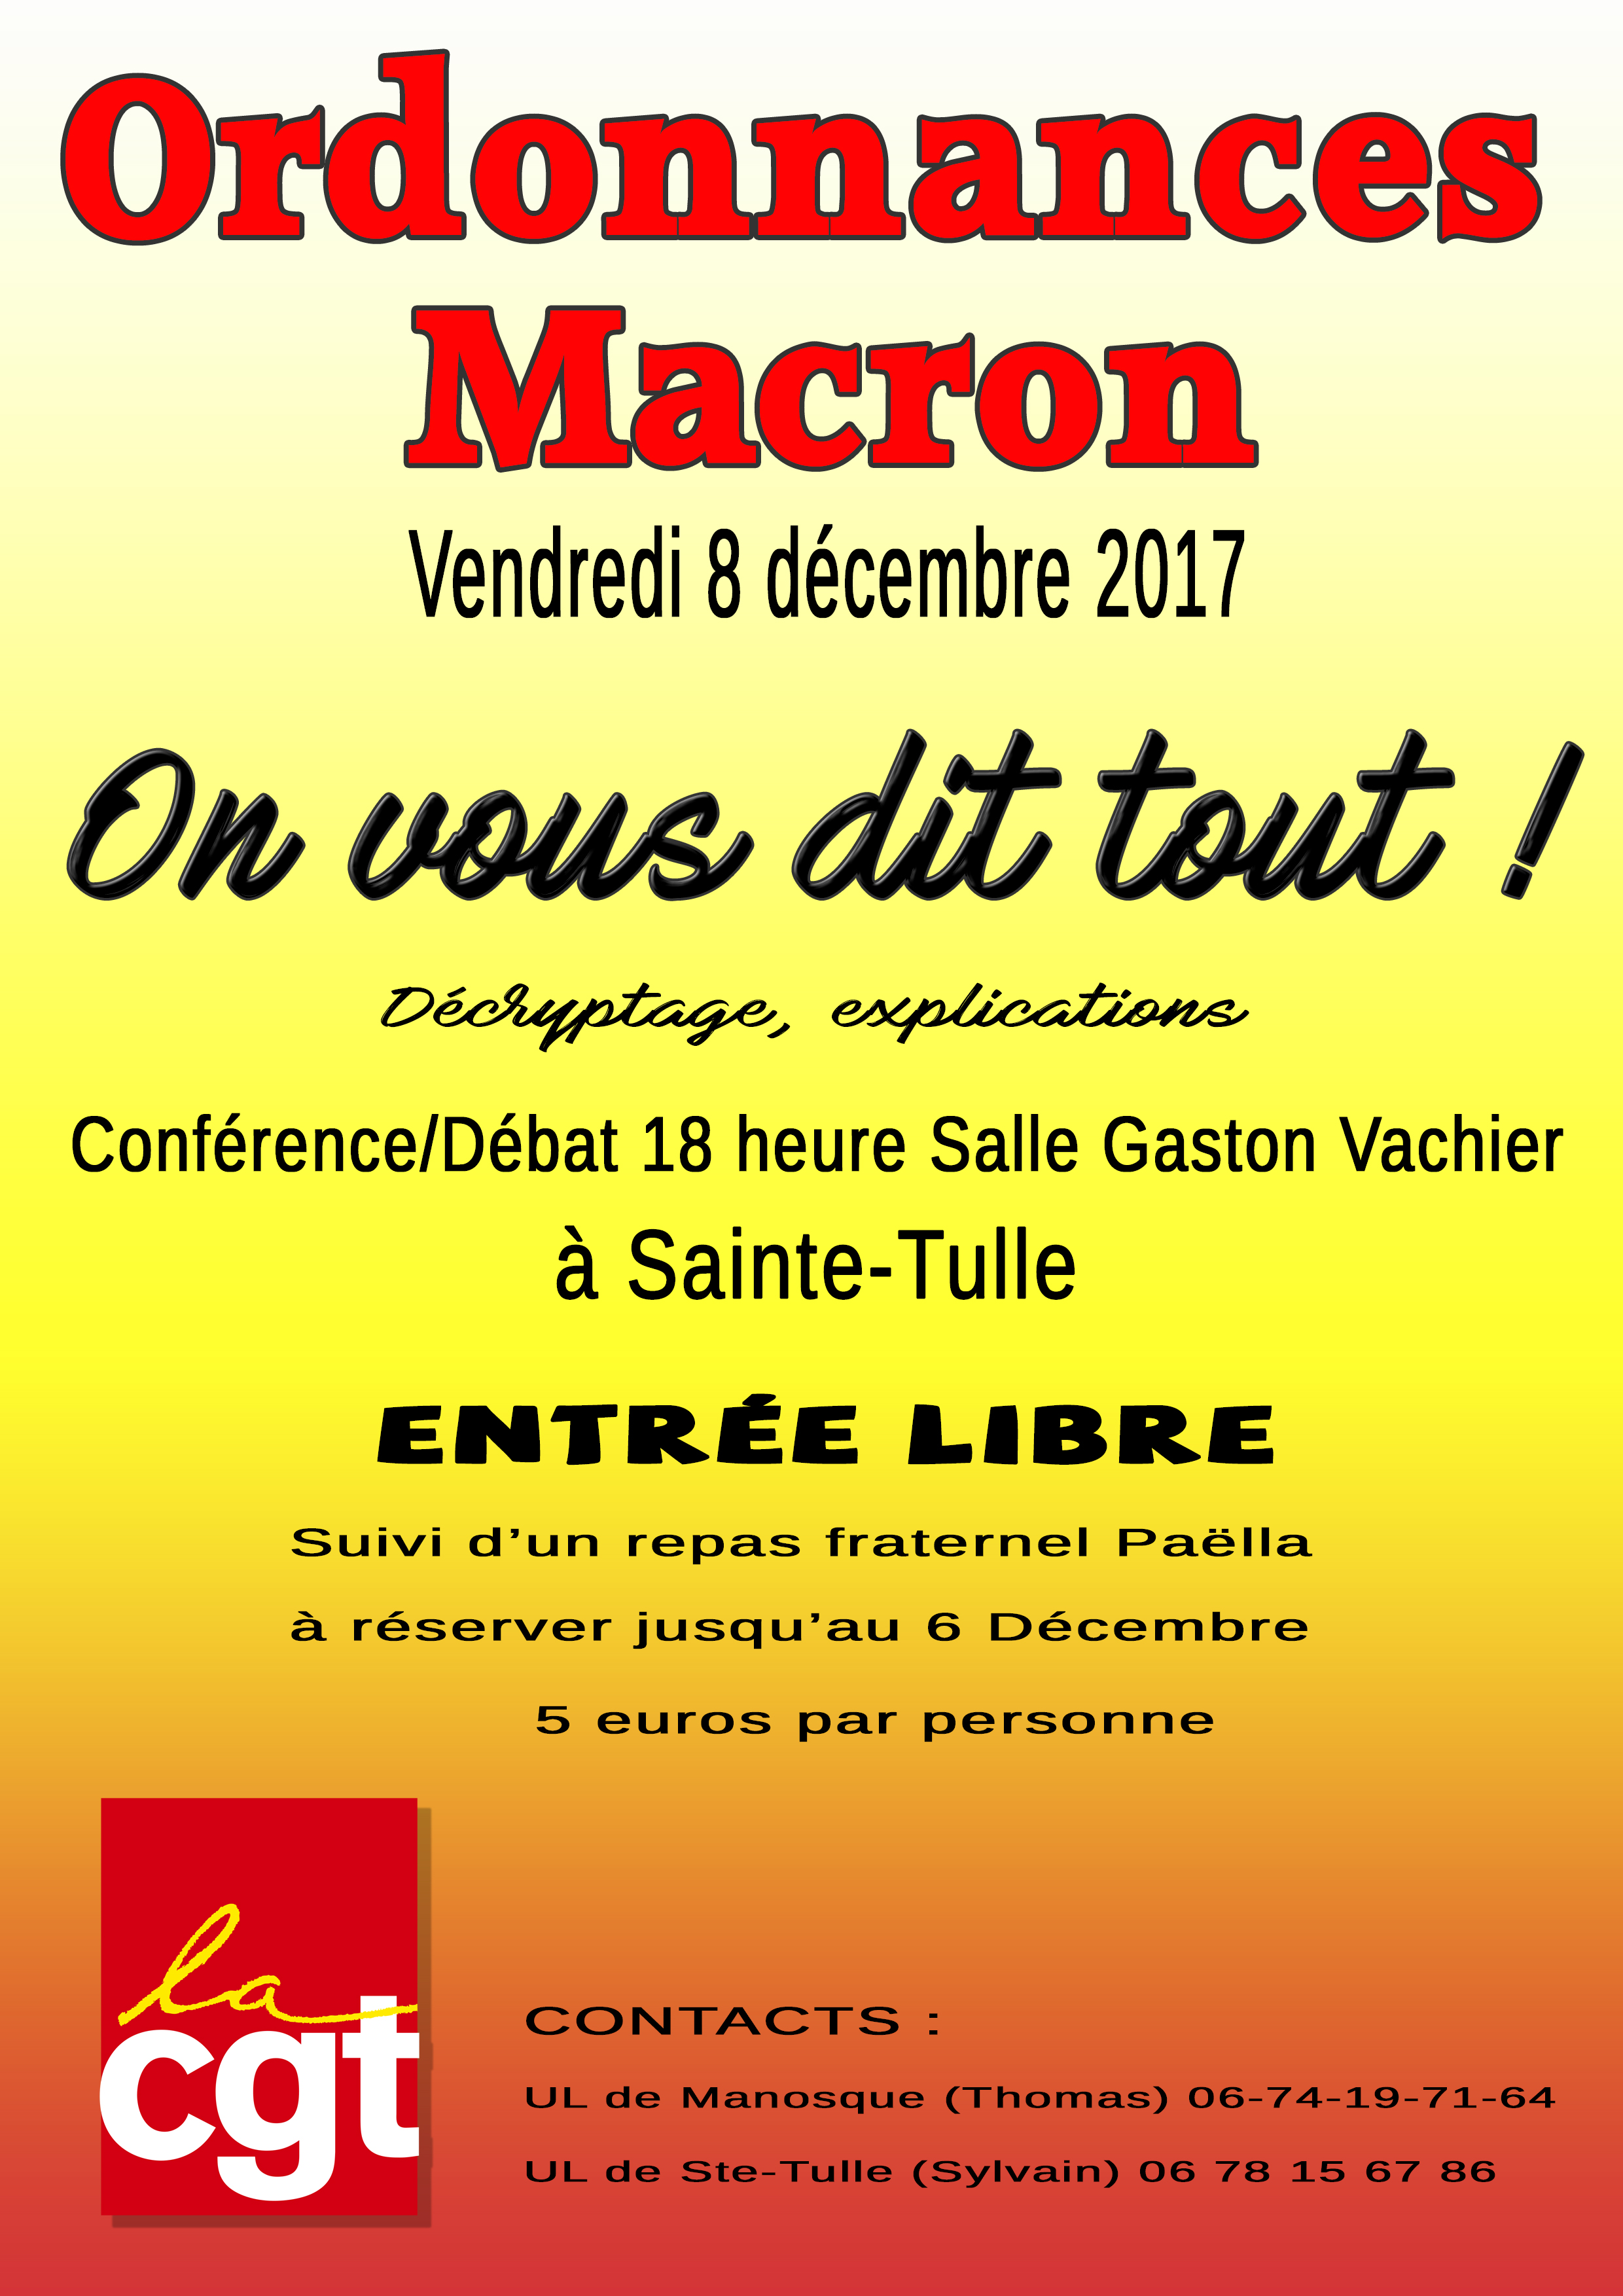 864. AG Ordonnances Macron CGT Manosque